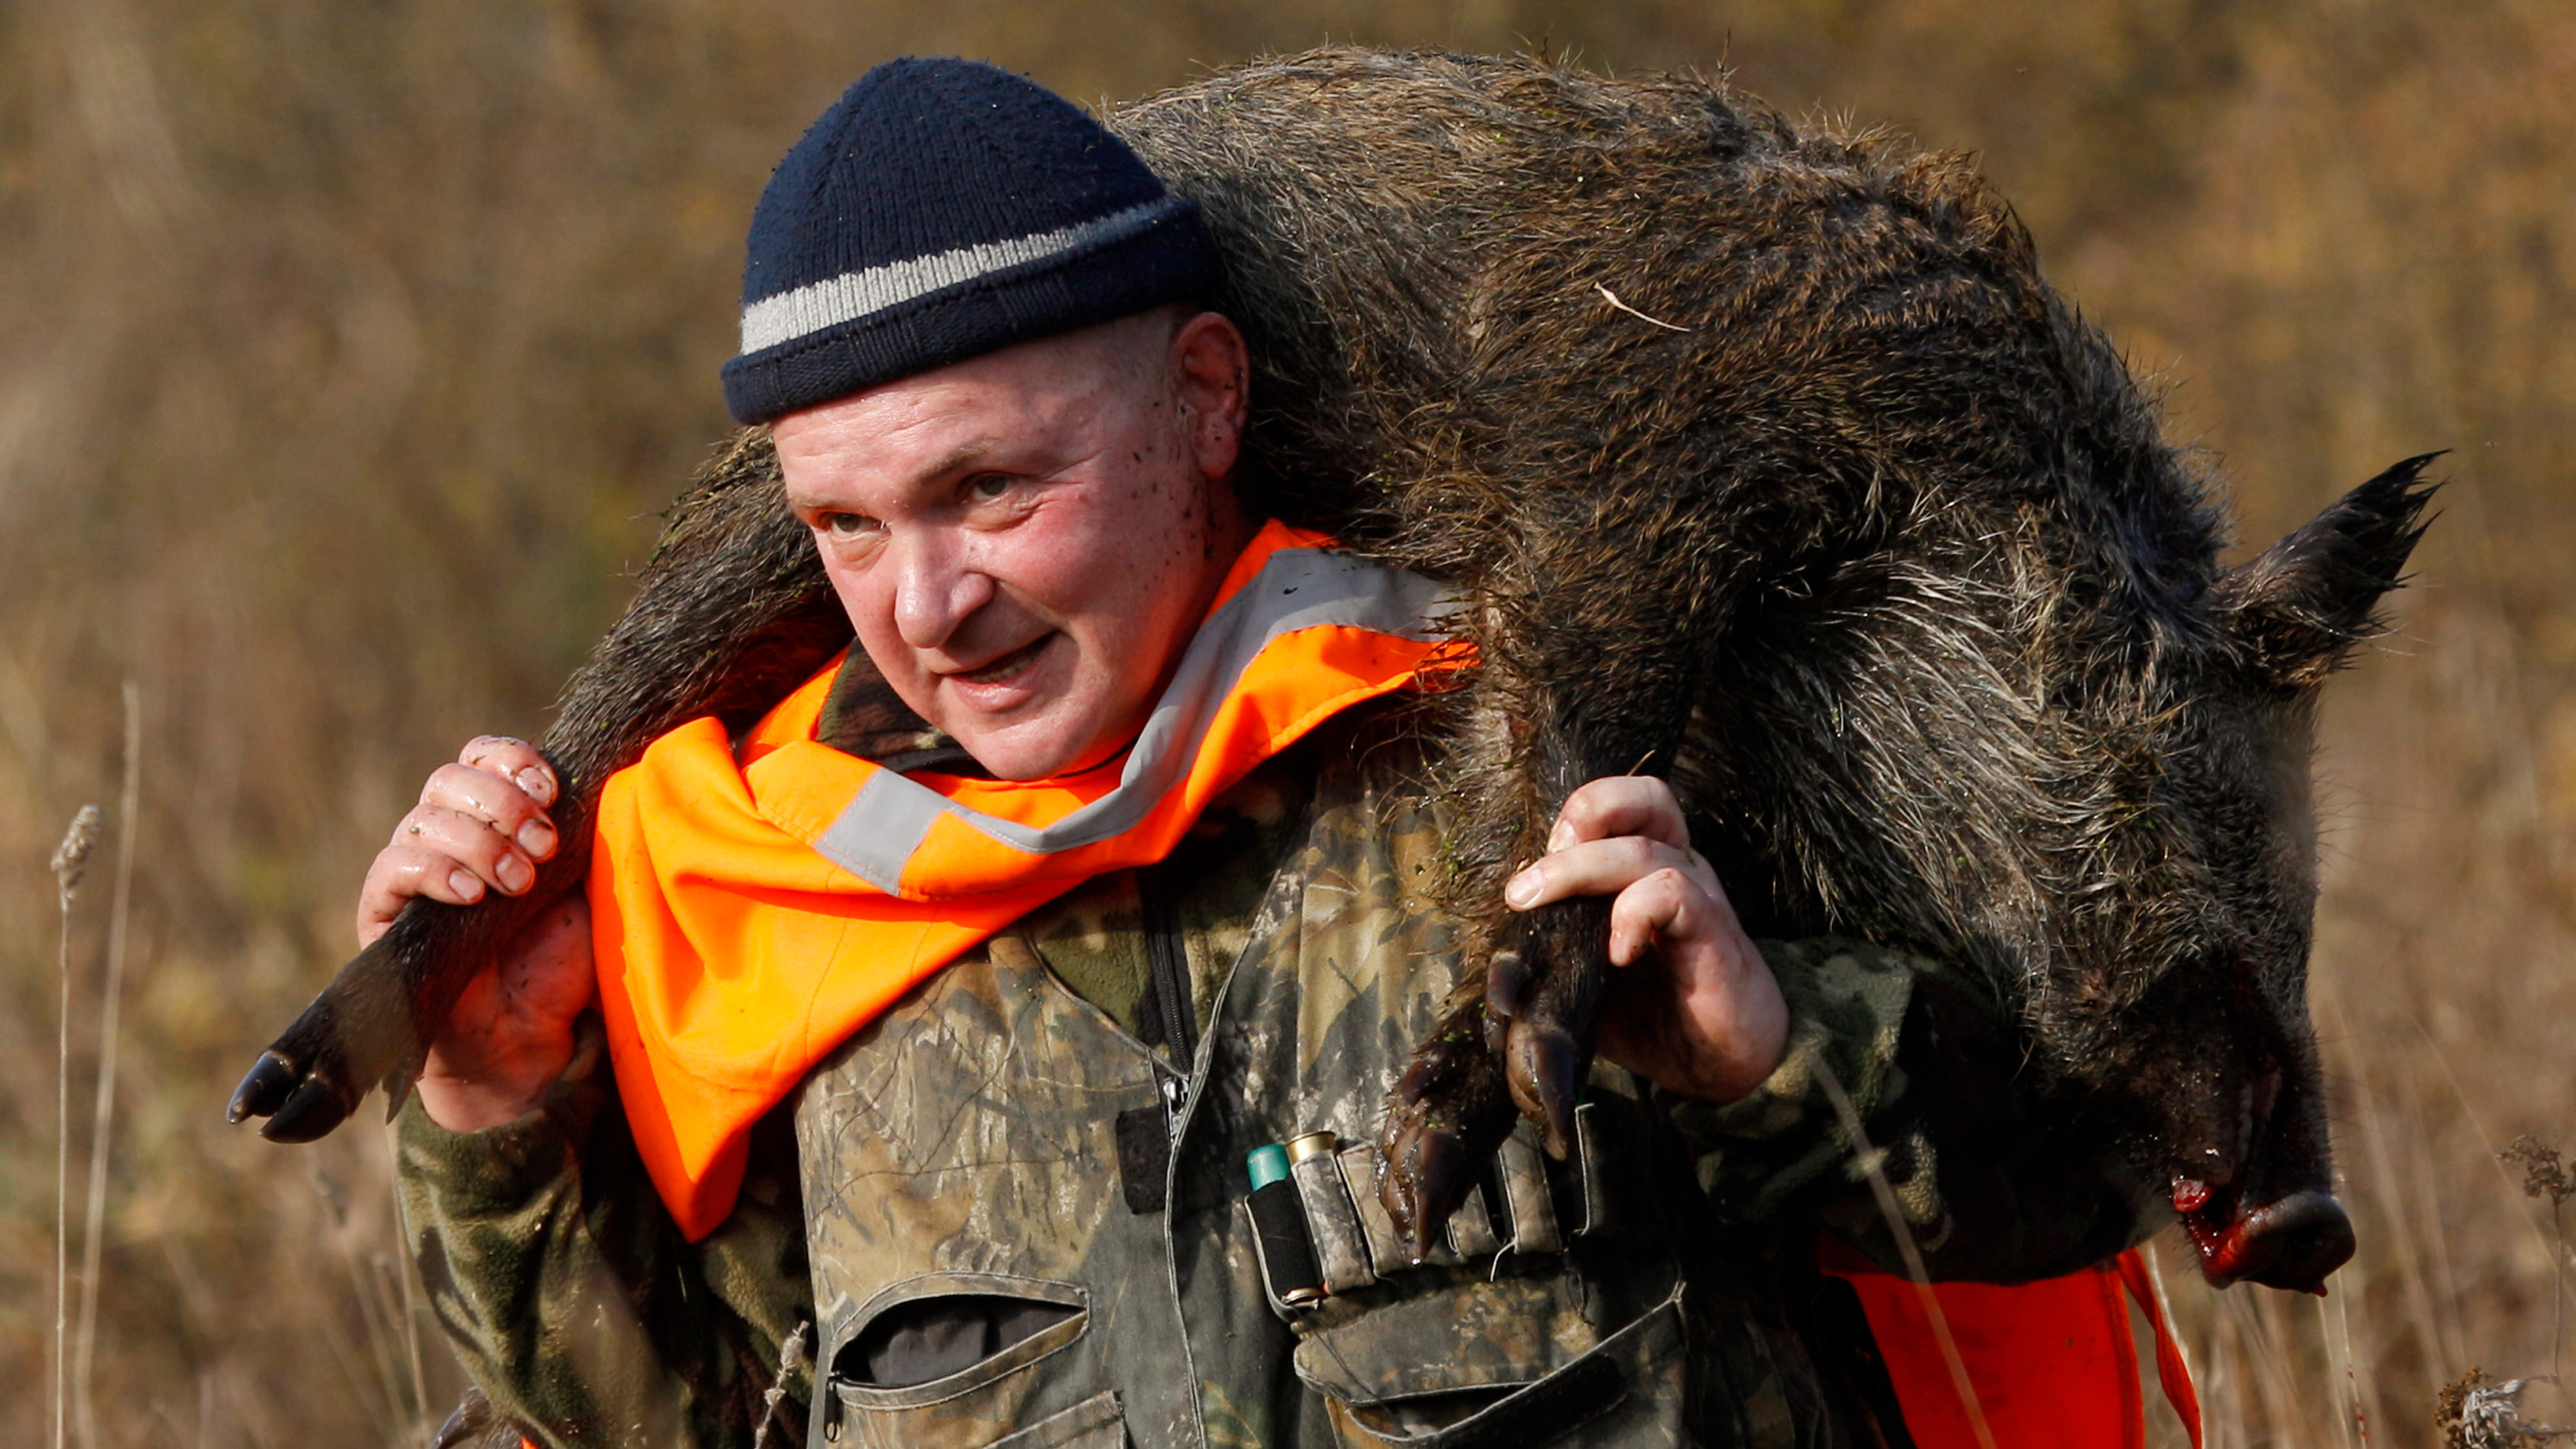 The photo shows a hunter carrying a dead boar on his back.